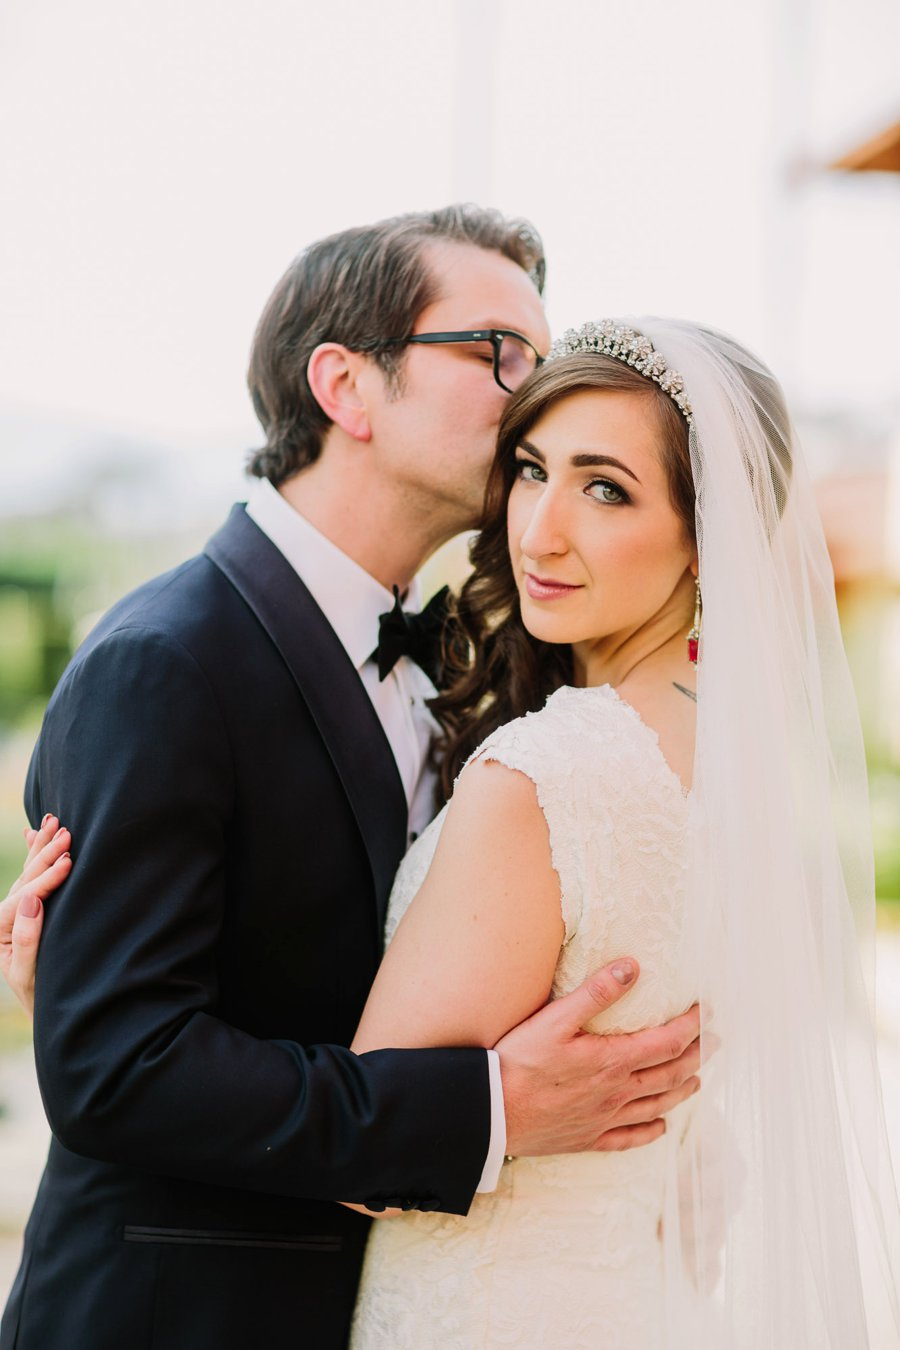 A Boho & Elegant Jewel Toned California Wedding via TheELD.com